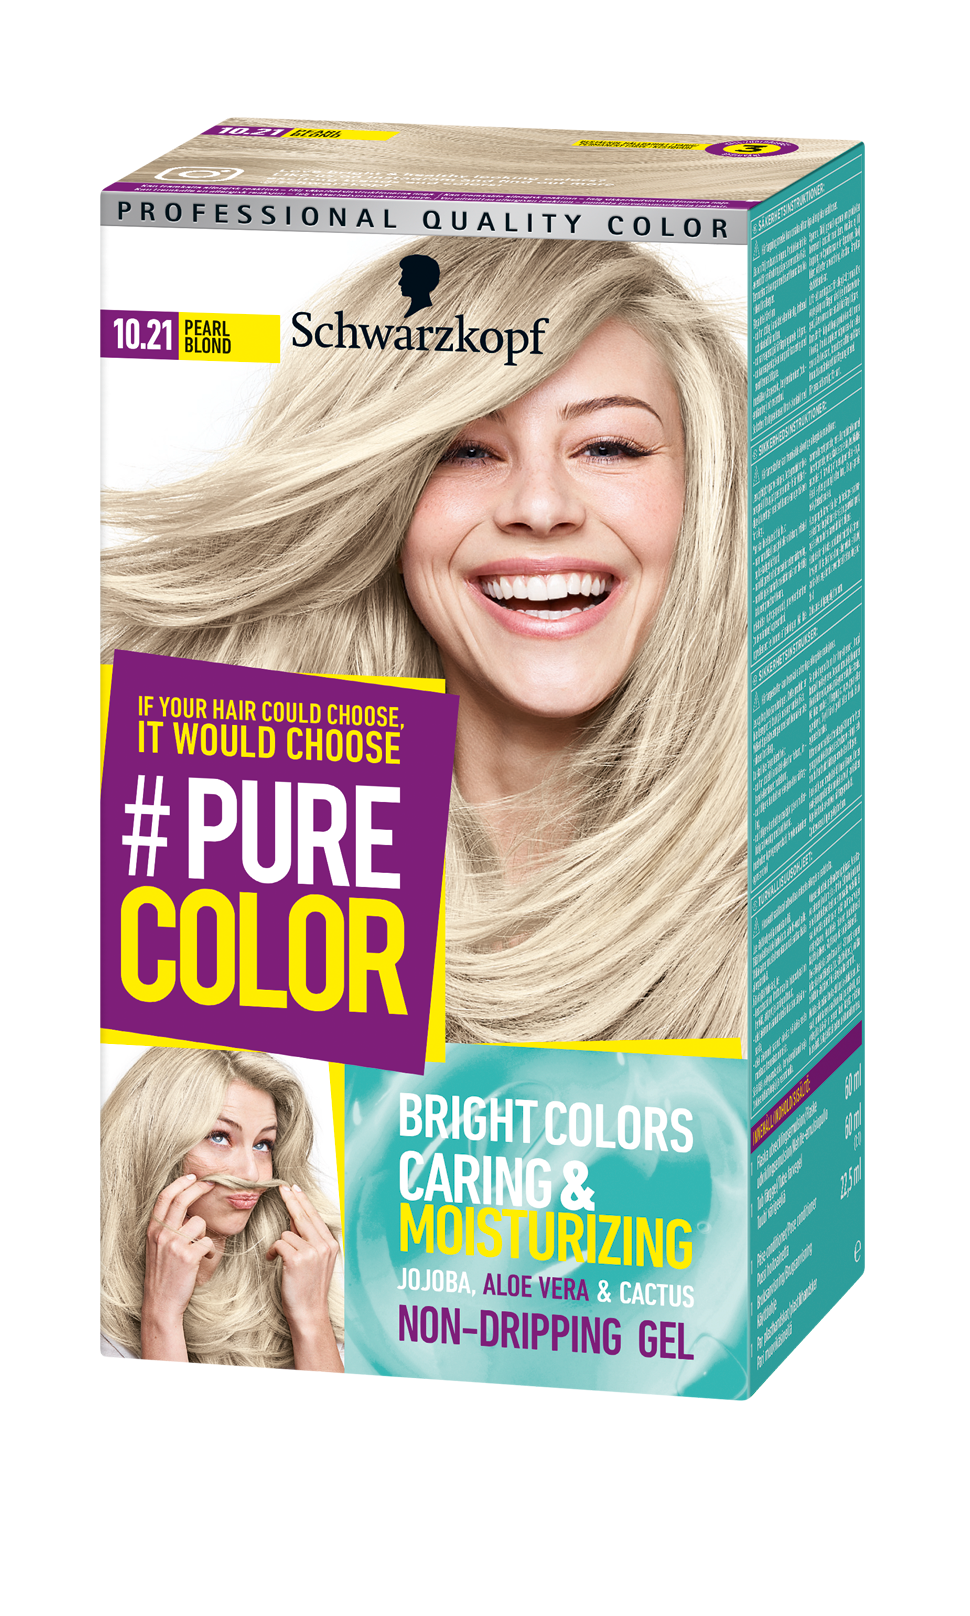 Pure-color-10-21-pearl-blond